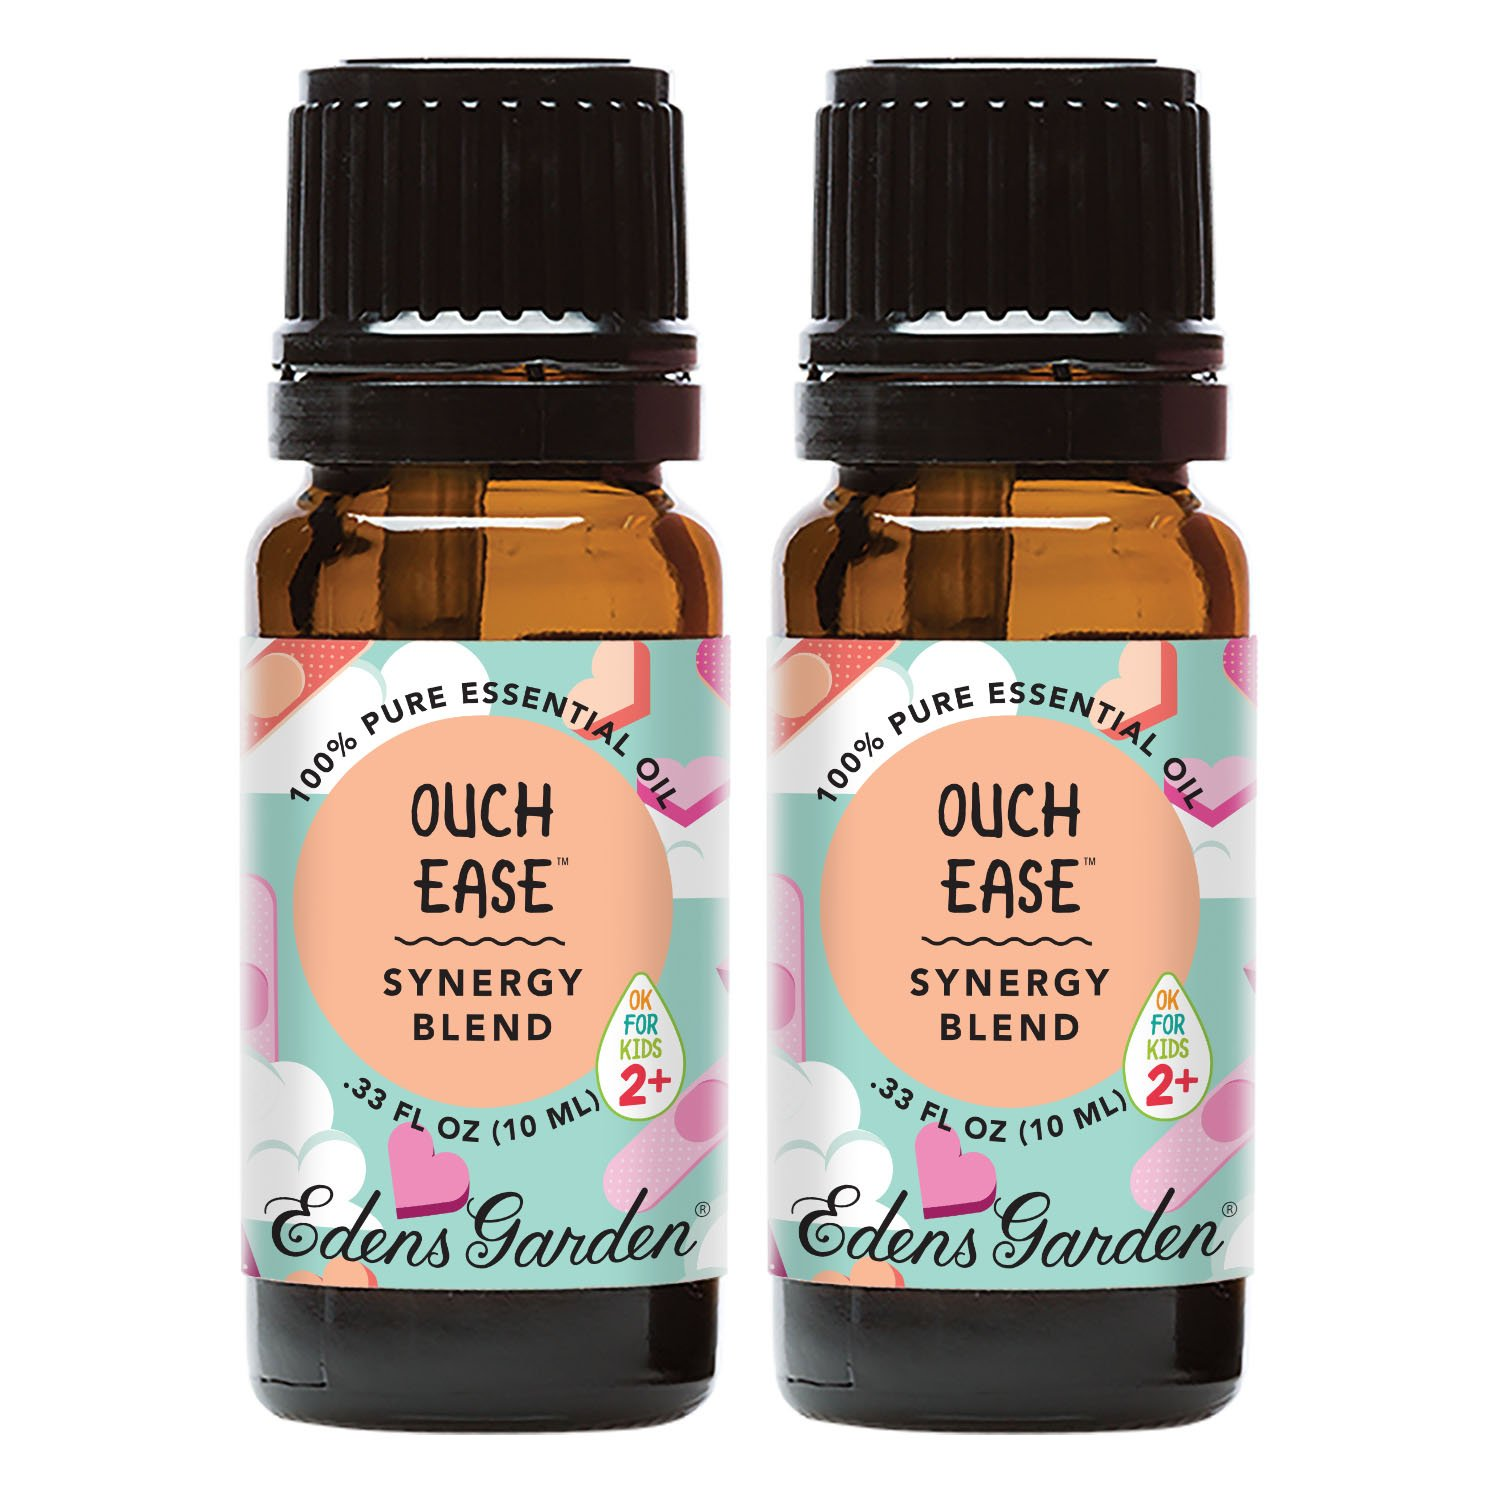 Edens Garden Ouch Ease Essential Oil Synergy Blend, 100% Pure Therapeutic Grade (Highest Quality Aromatherapy Oils), 10 ml Value Pack